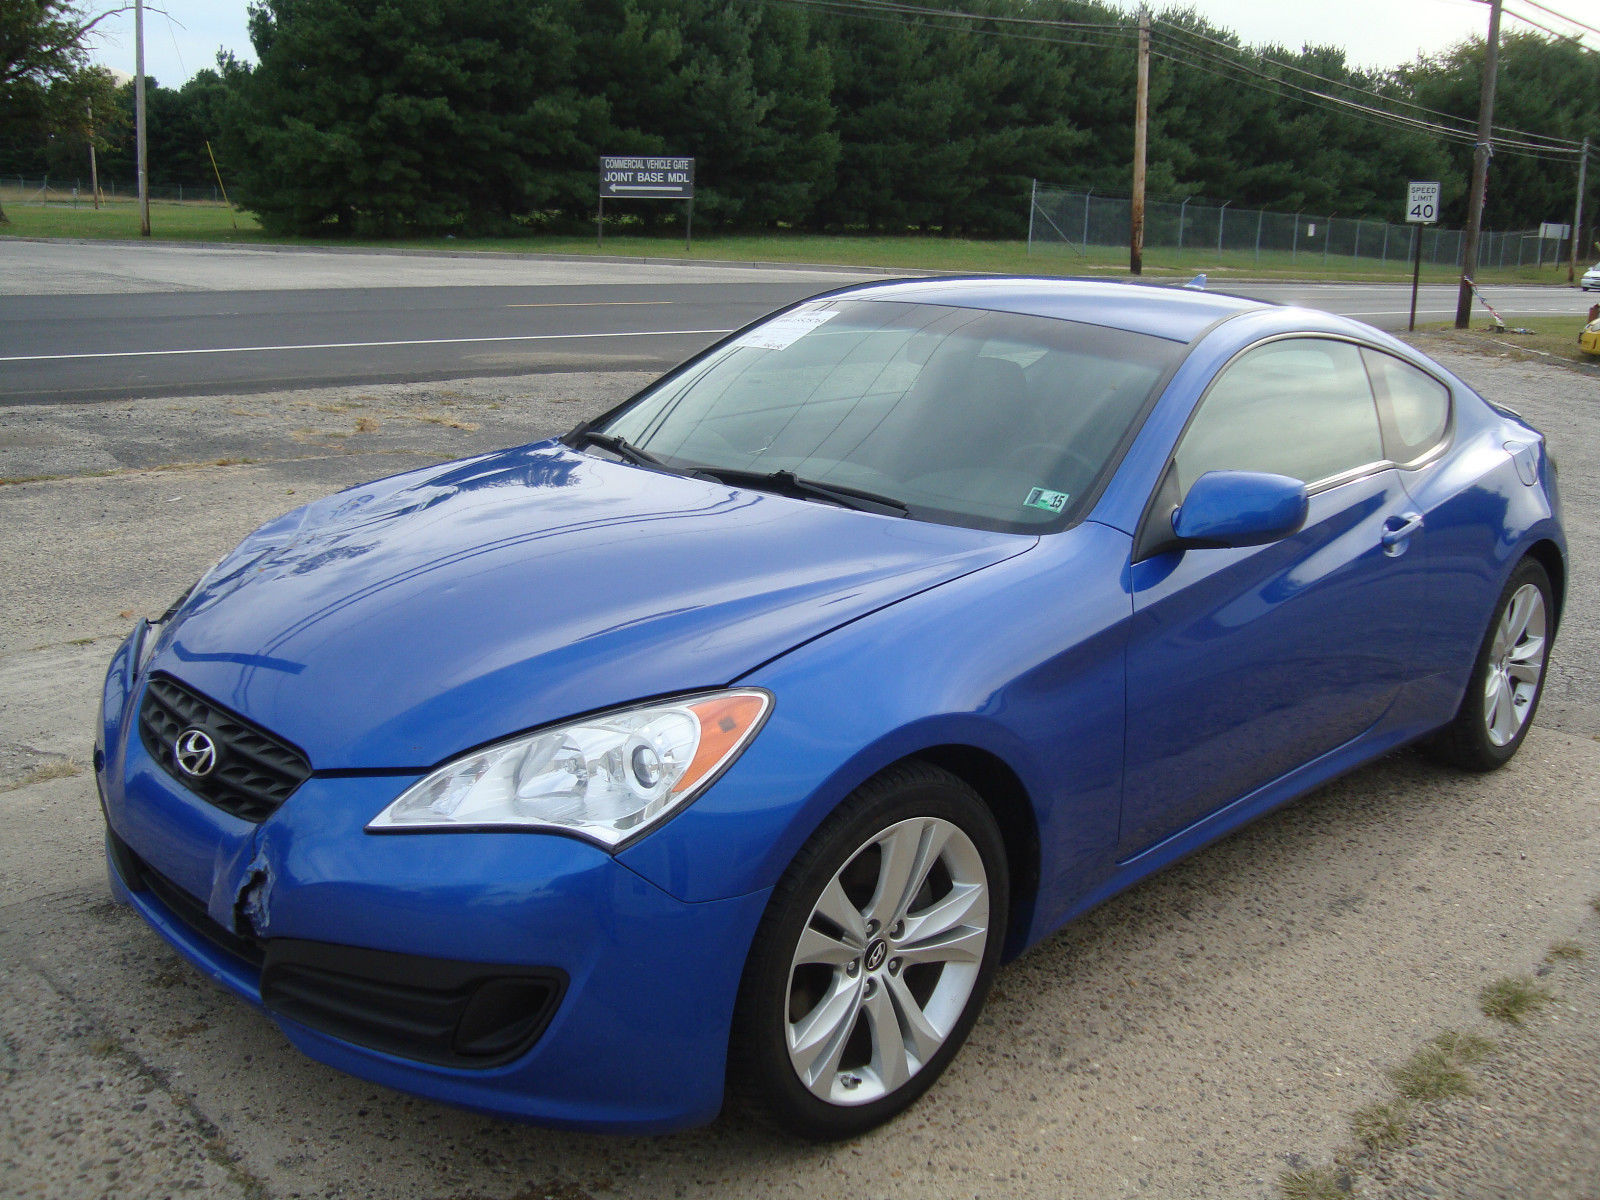 2014 Hyundai Genesis Coupe 2.0 T >> Minor damage 2011 Hyundai Genesis 2.0T Coupe Rebuildable for sale